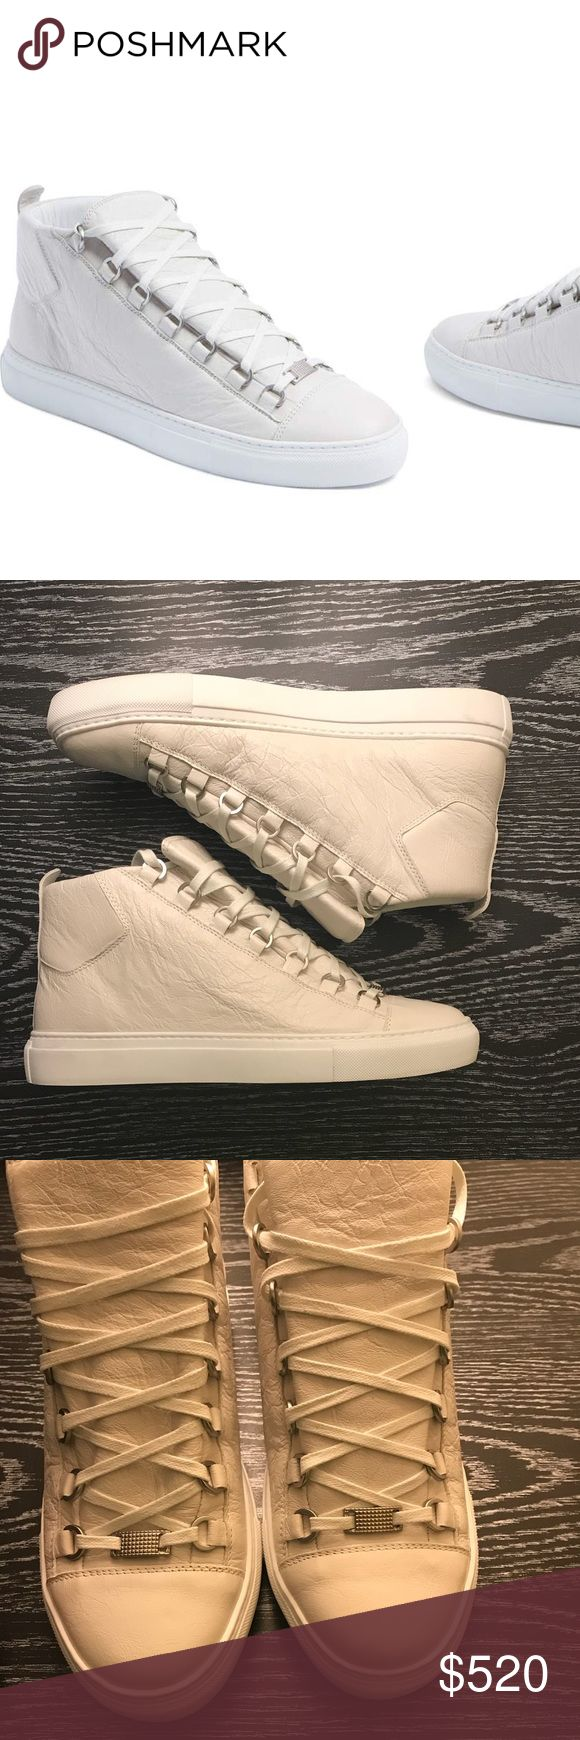 Balenciaga arena high sneaker Balenciaga arena high sneaker new without box and original tag size 40EU 7 in men's color is considered Extra blank leather (off white /cream) . No scuffs on leather open to questions and reasonable offers. Originally bought at Nordstroms . Balenciaga Shoes Sneakers